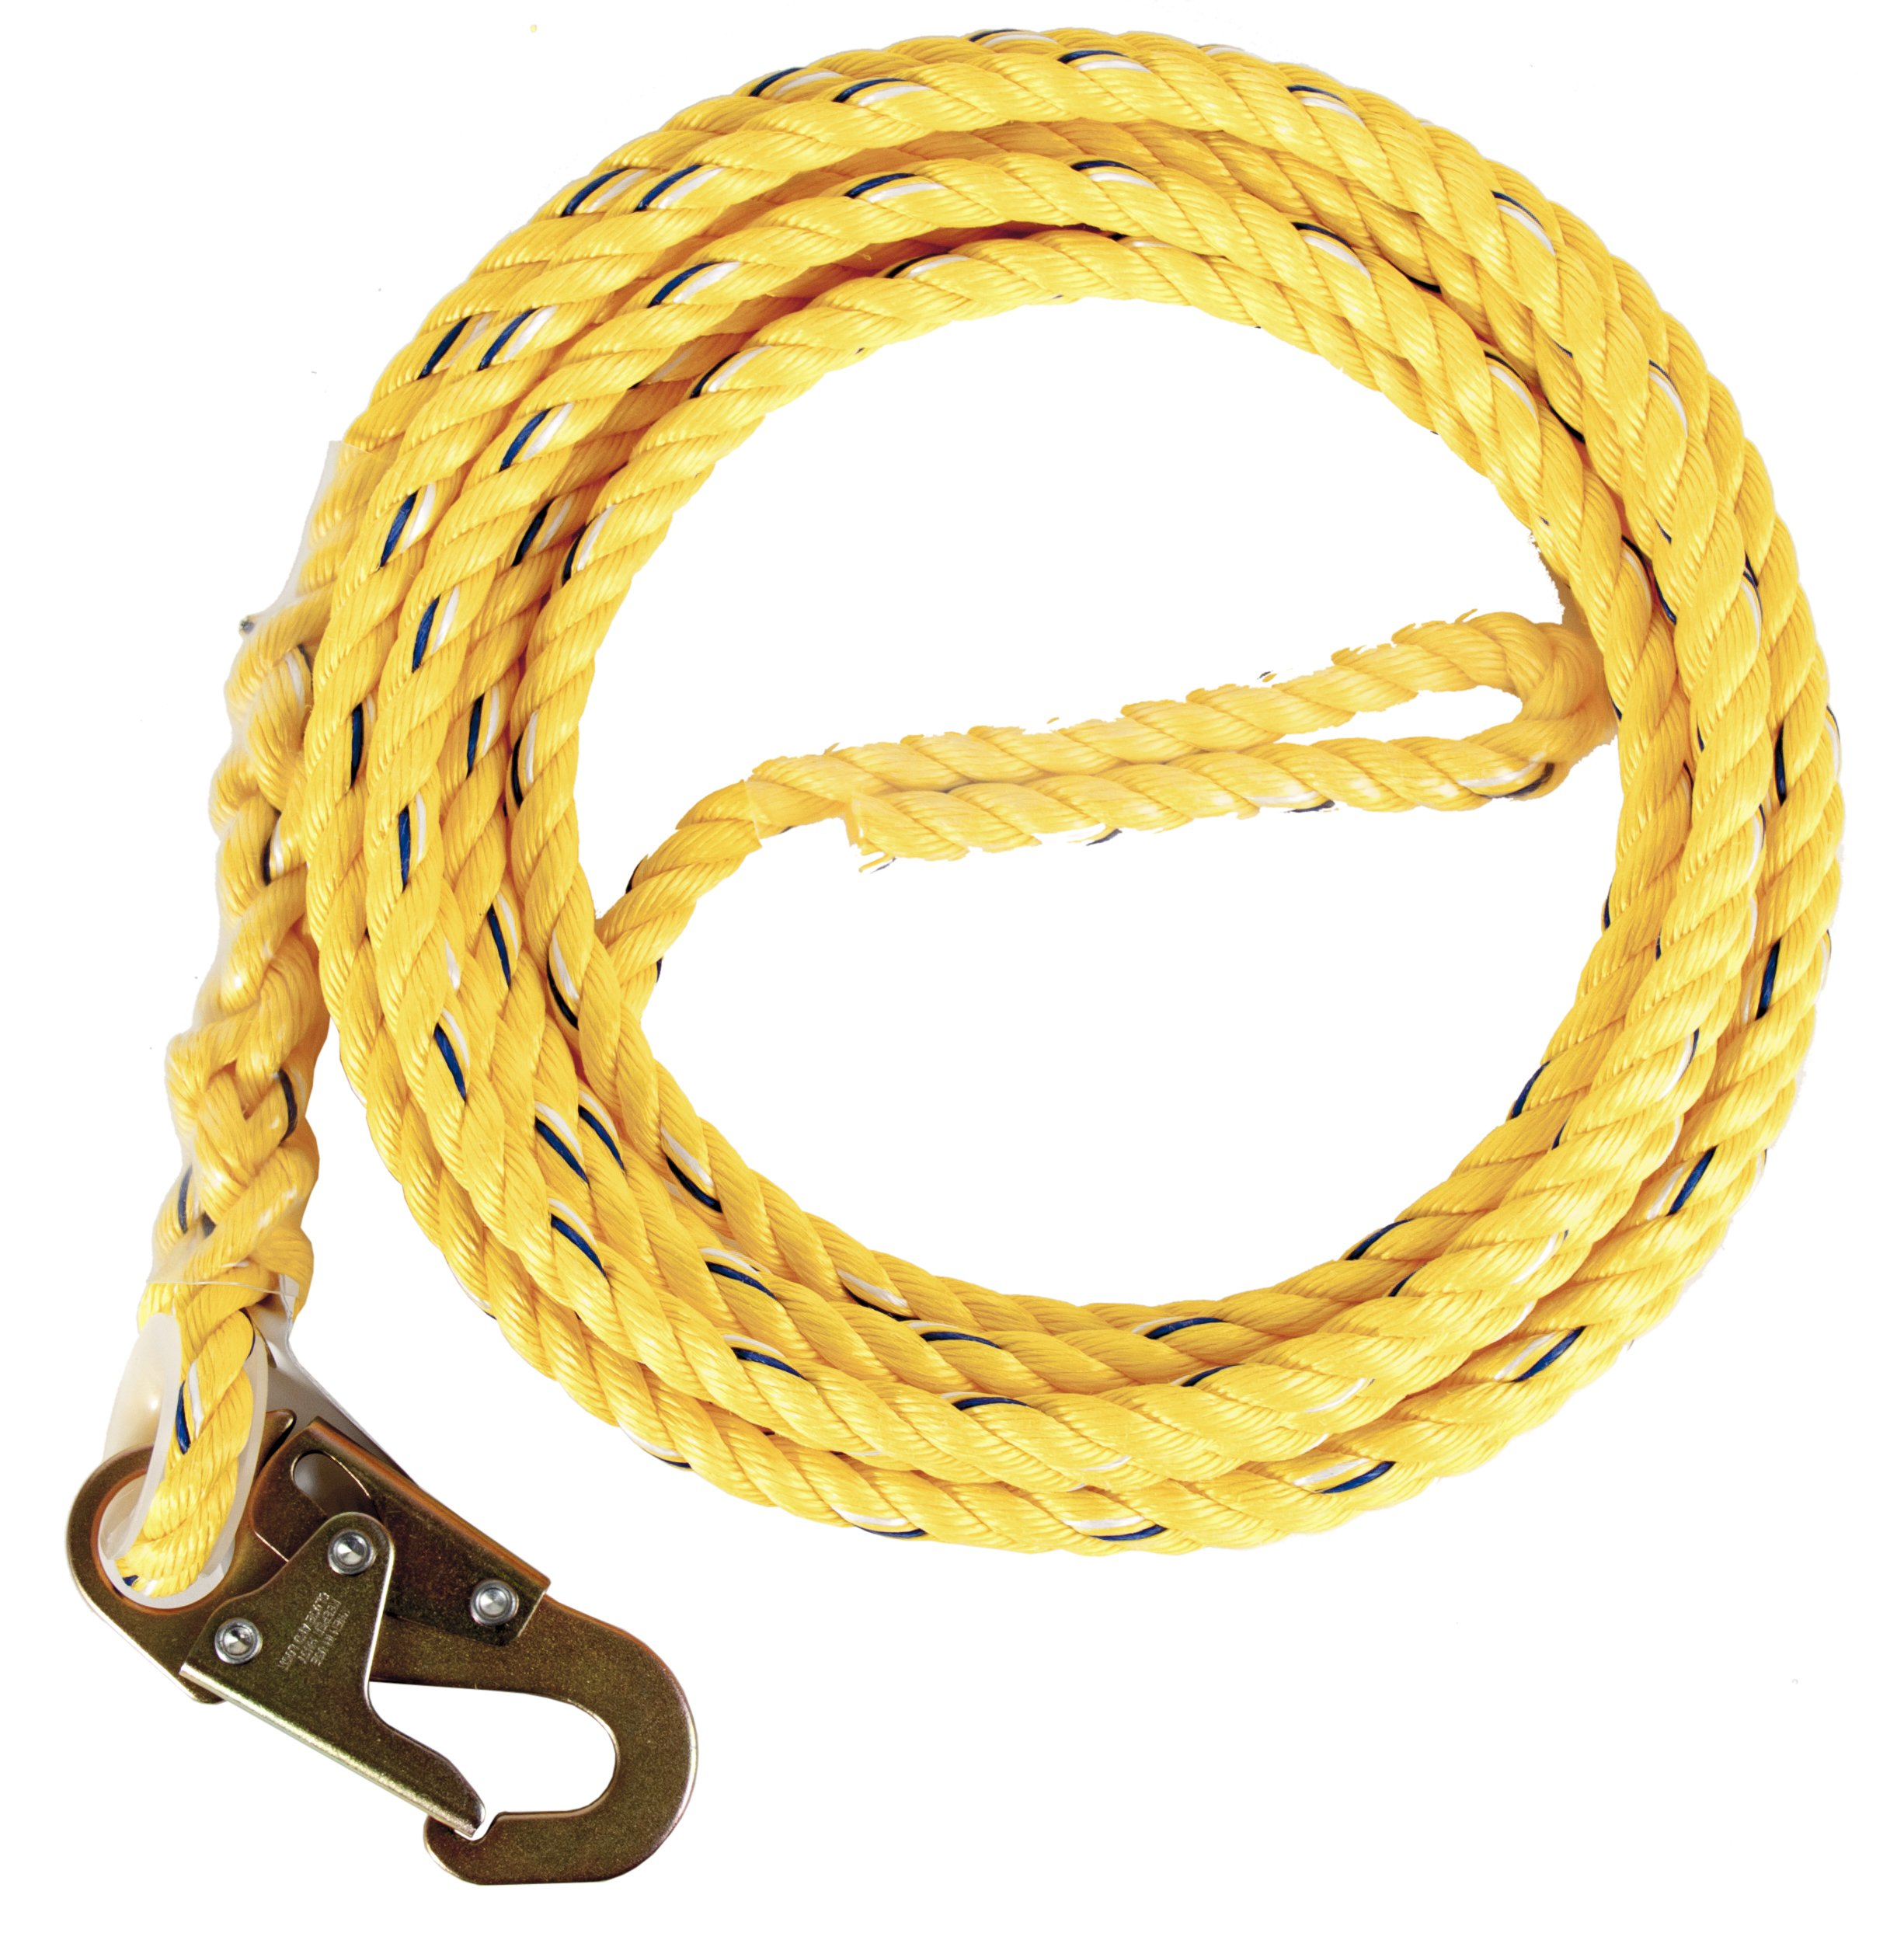 Guardian Fall Protection 01340 VL58-50 Standard 5/8 Inch Thick Rope with Snaphook End, 50-Foot by Guardian Fall Protection